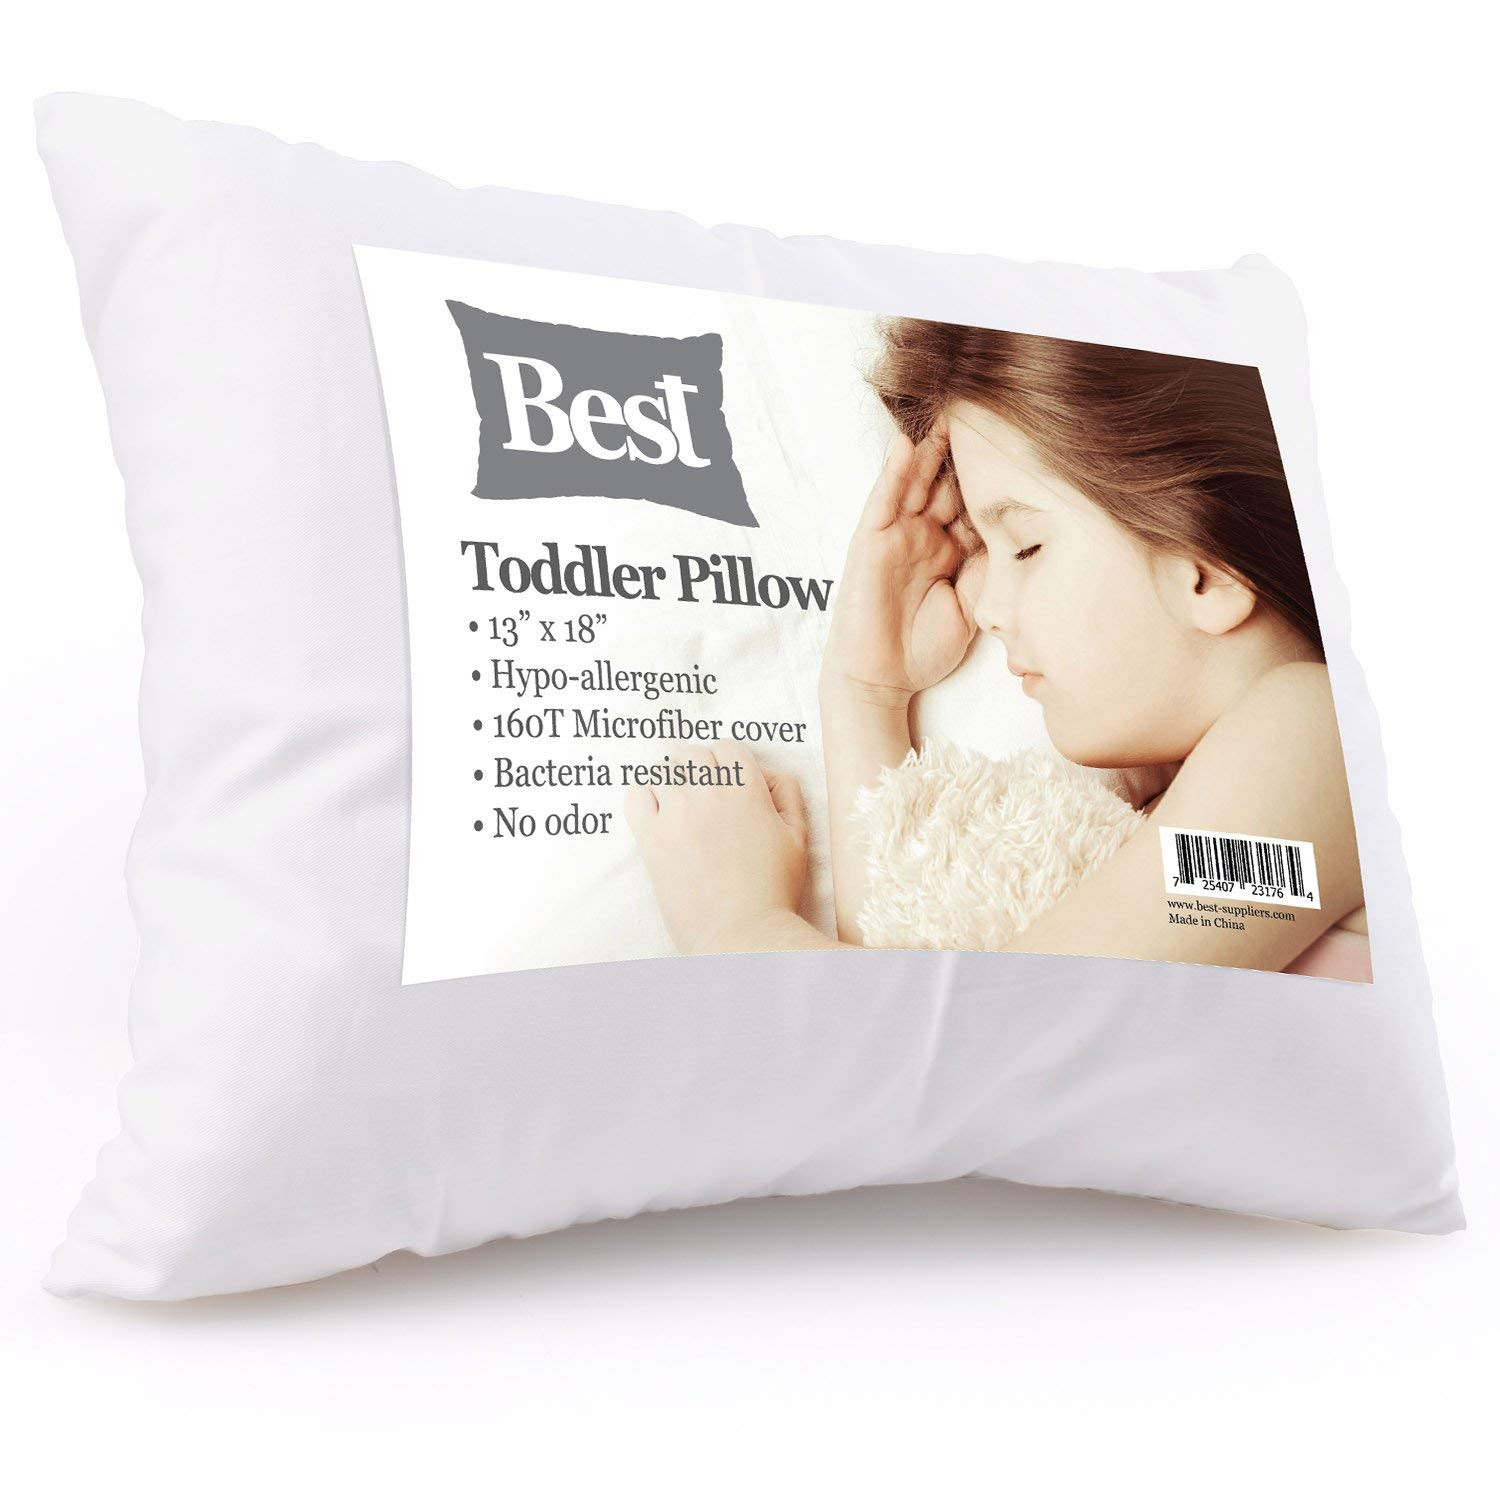 Best Toddler Pillow (INCREDIBY SOFT 100% HYPOALLERGENIC) No Pillowcase Needed! Allergy Free White Microfiber Finish 13x18 Provides Great Back